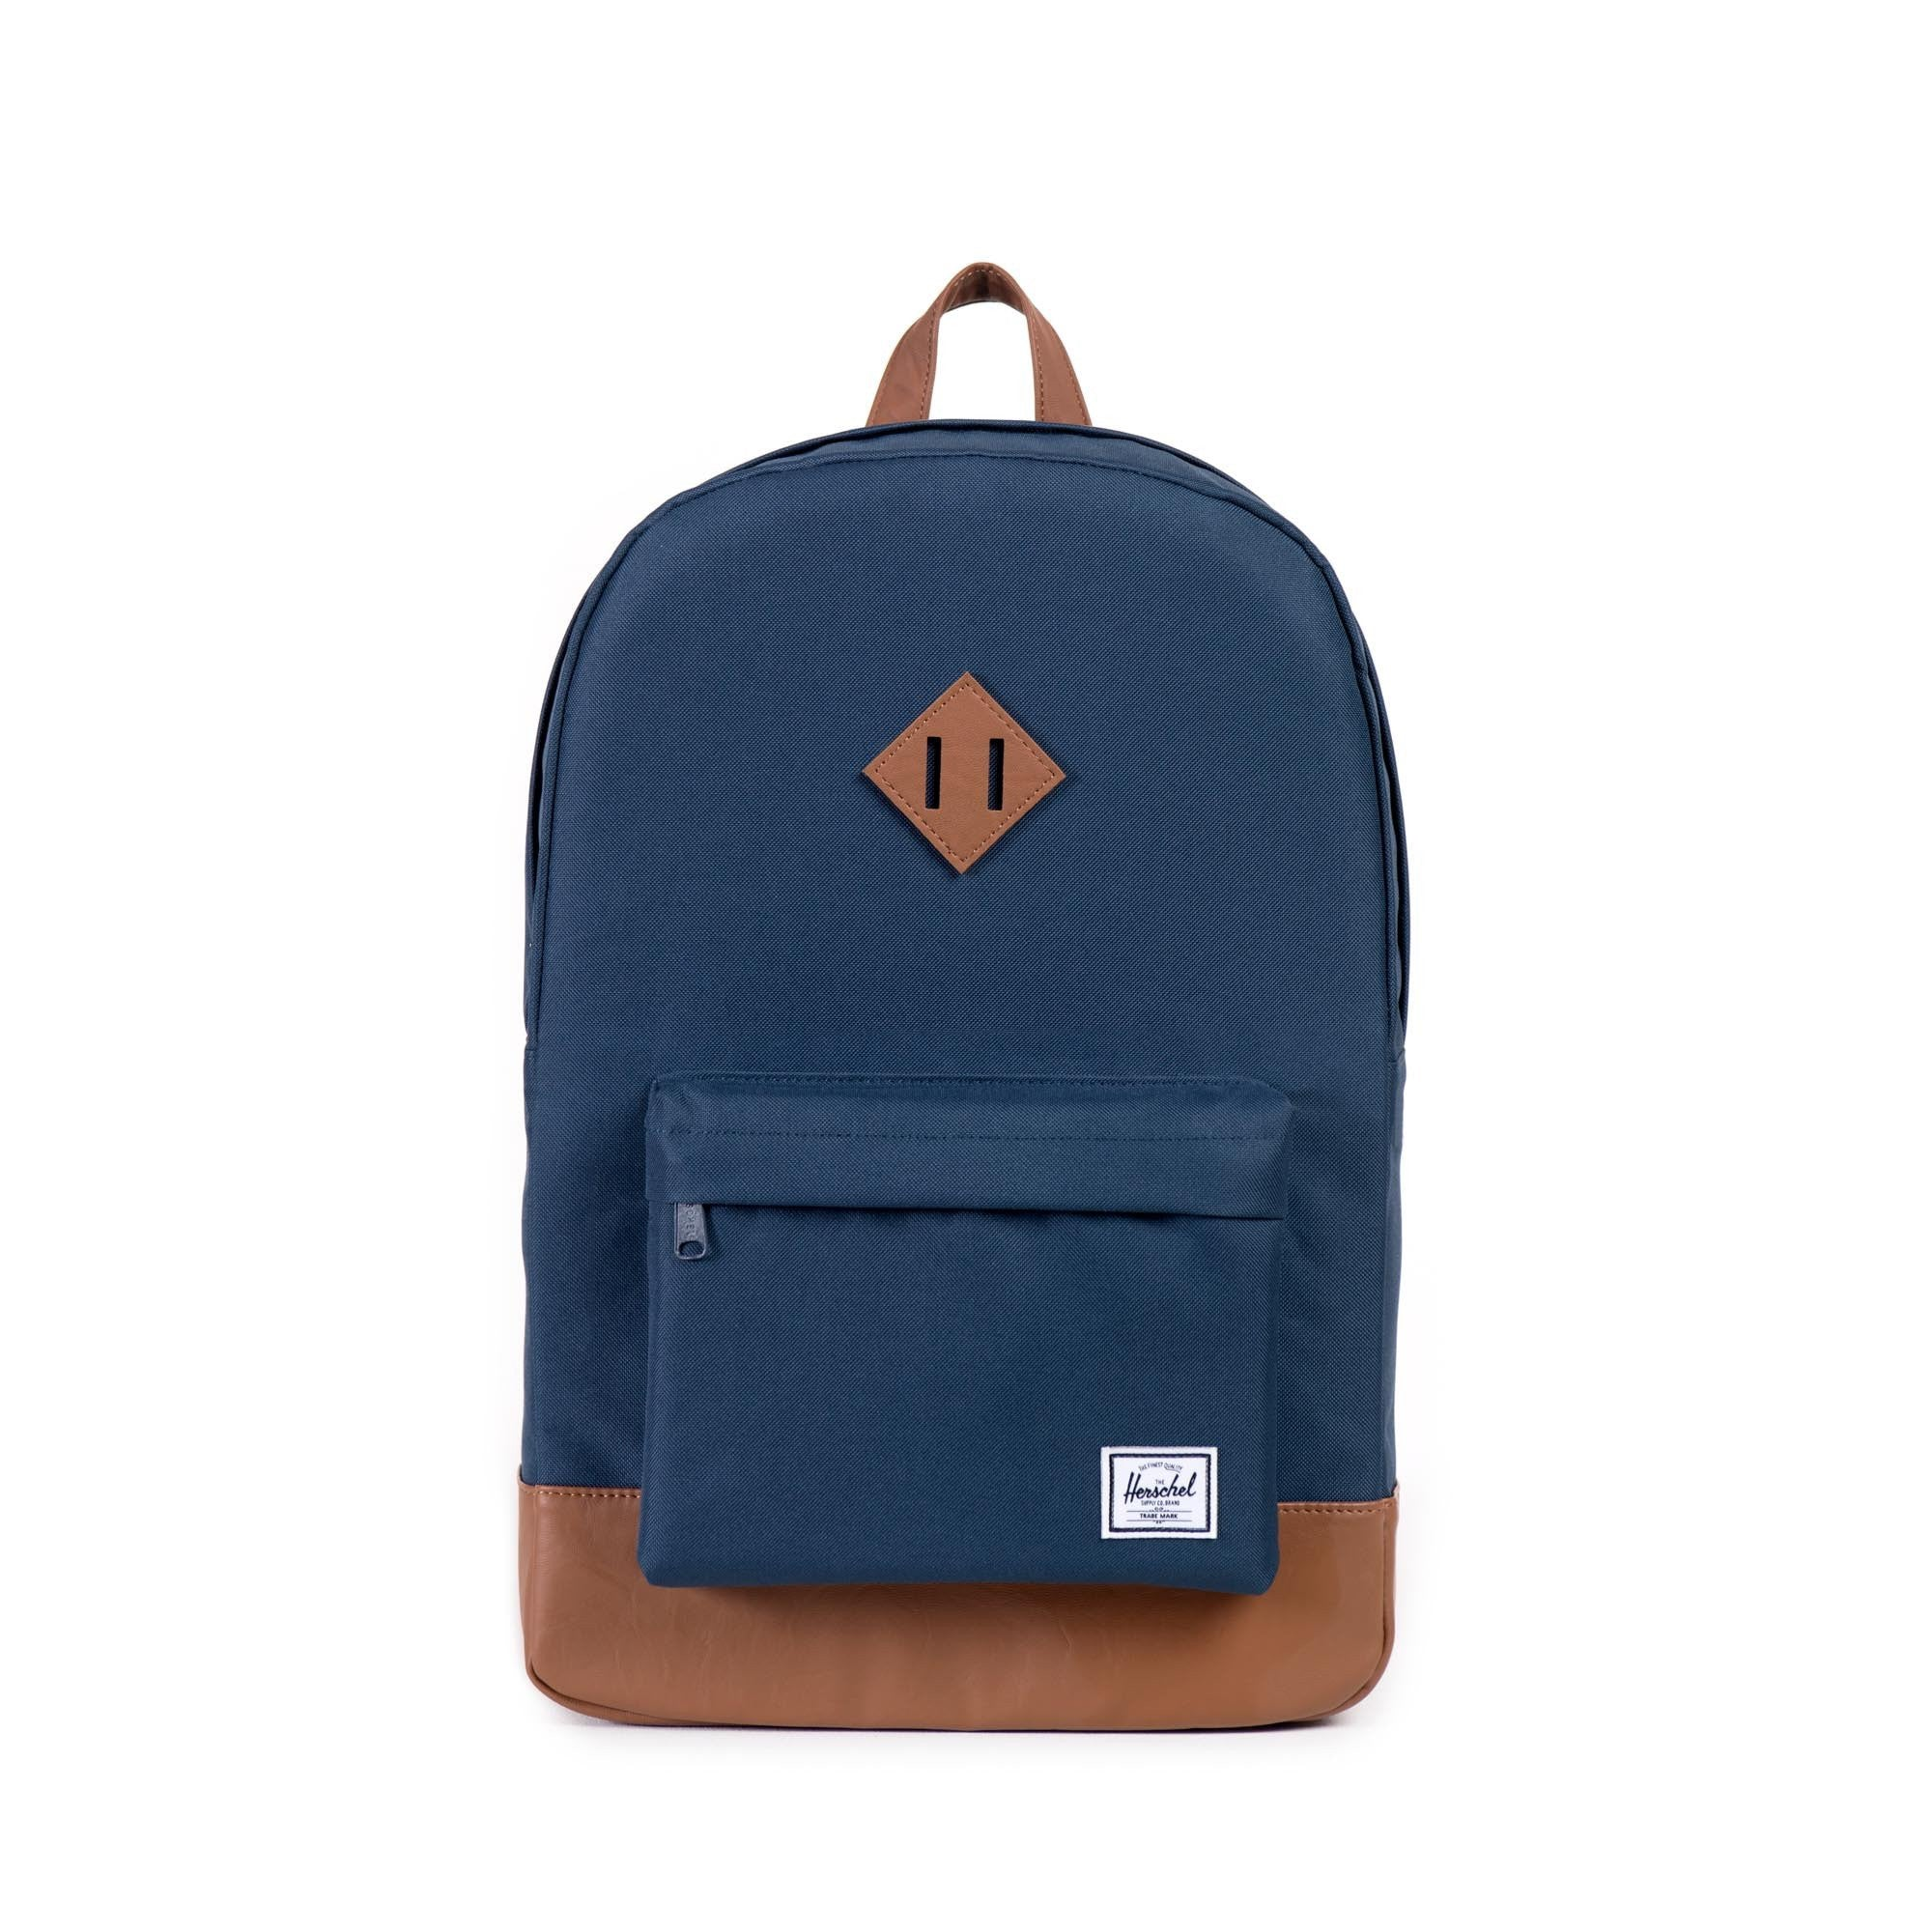 Herschel Heritage Backpack Navy